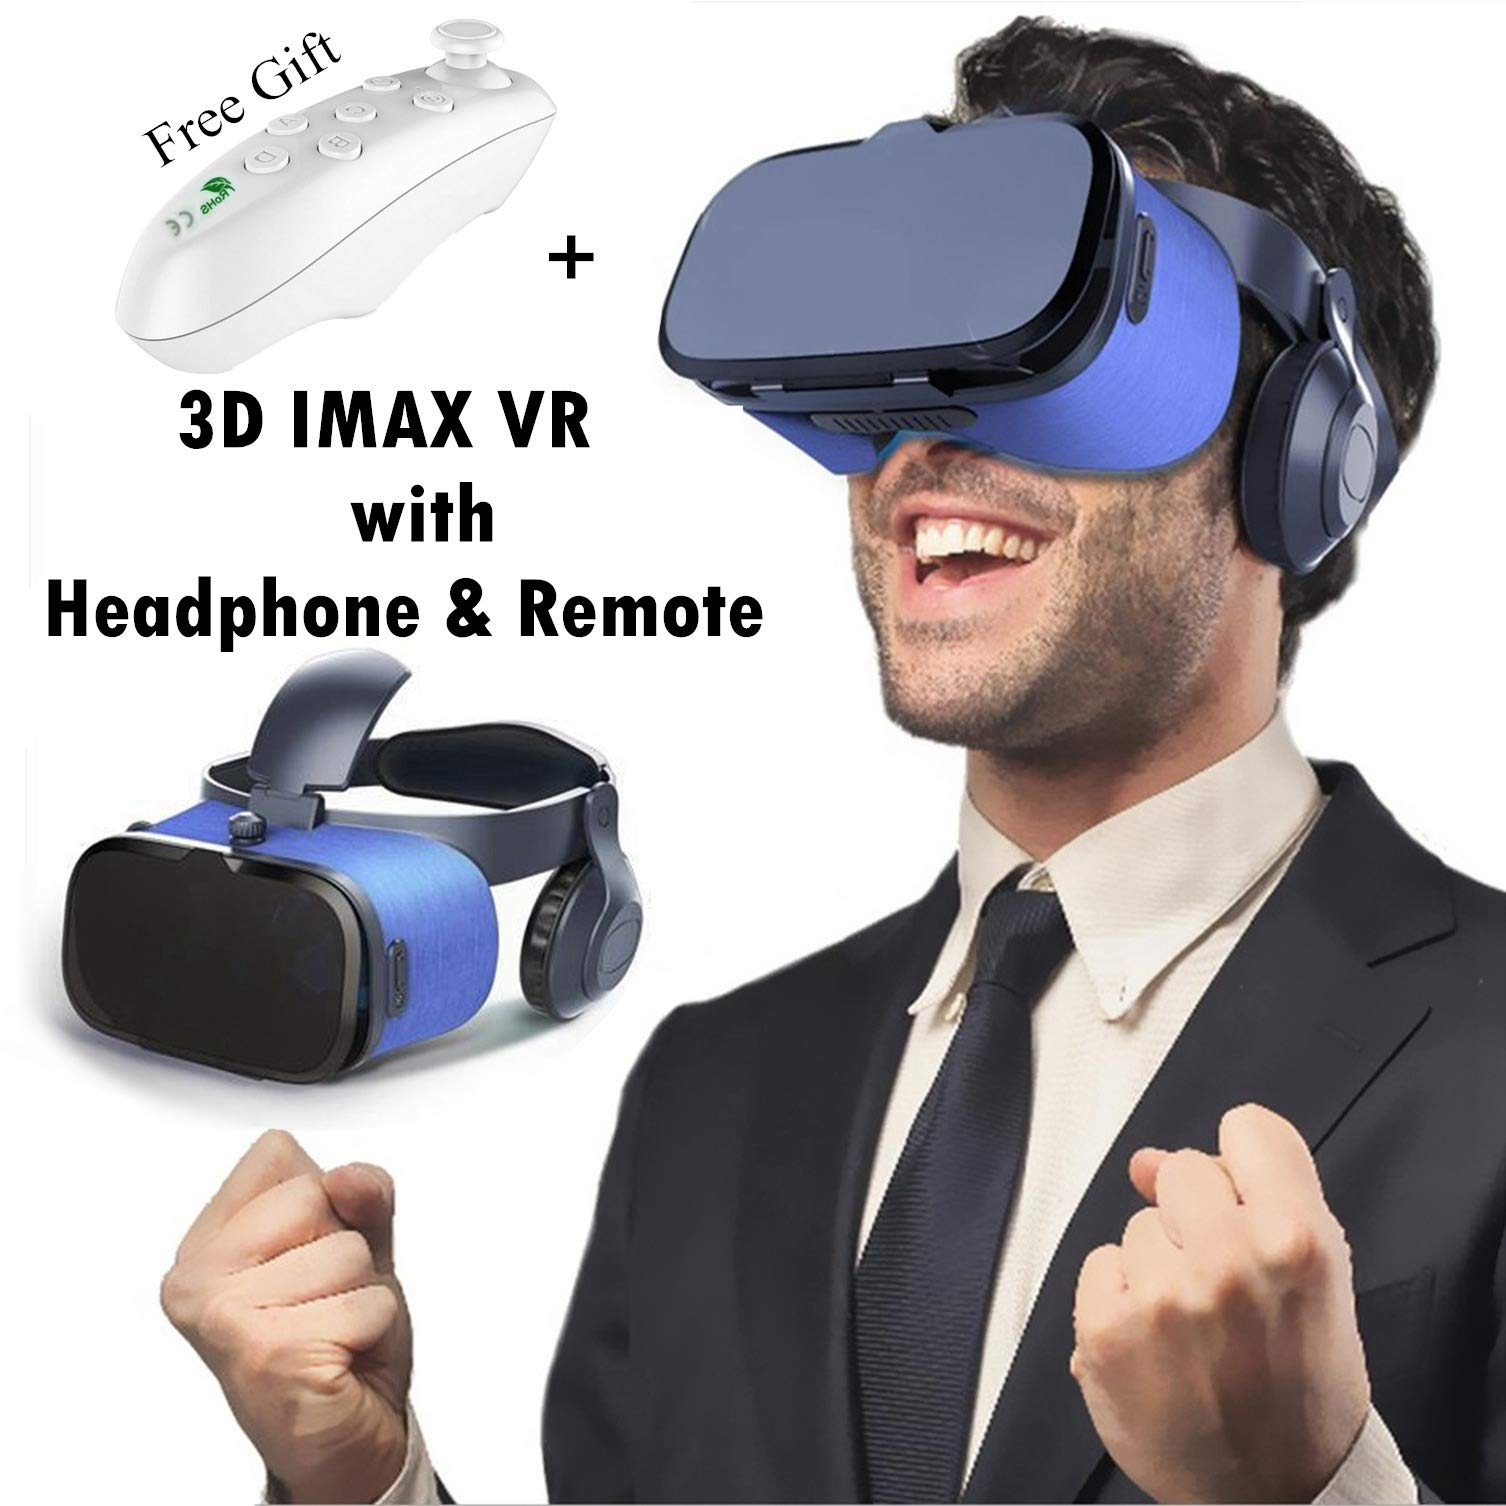 3D Virtual Reality Headset for Kid & Adult, Tsanglight 2018 New VR Goggle w/Headphone & Remote for 3D Movie/Game, VR Glasses Fit for iOS iPhone XR X 8 7 6 S Plus Android Samsung Galaxy S9 S8 S7 Edge